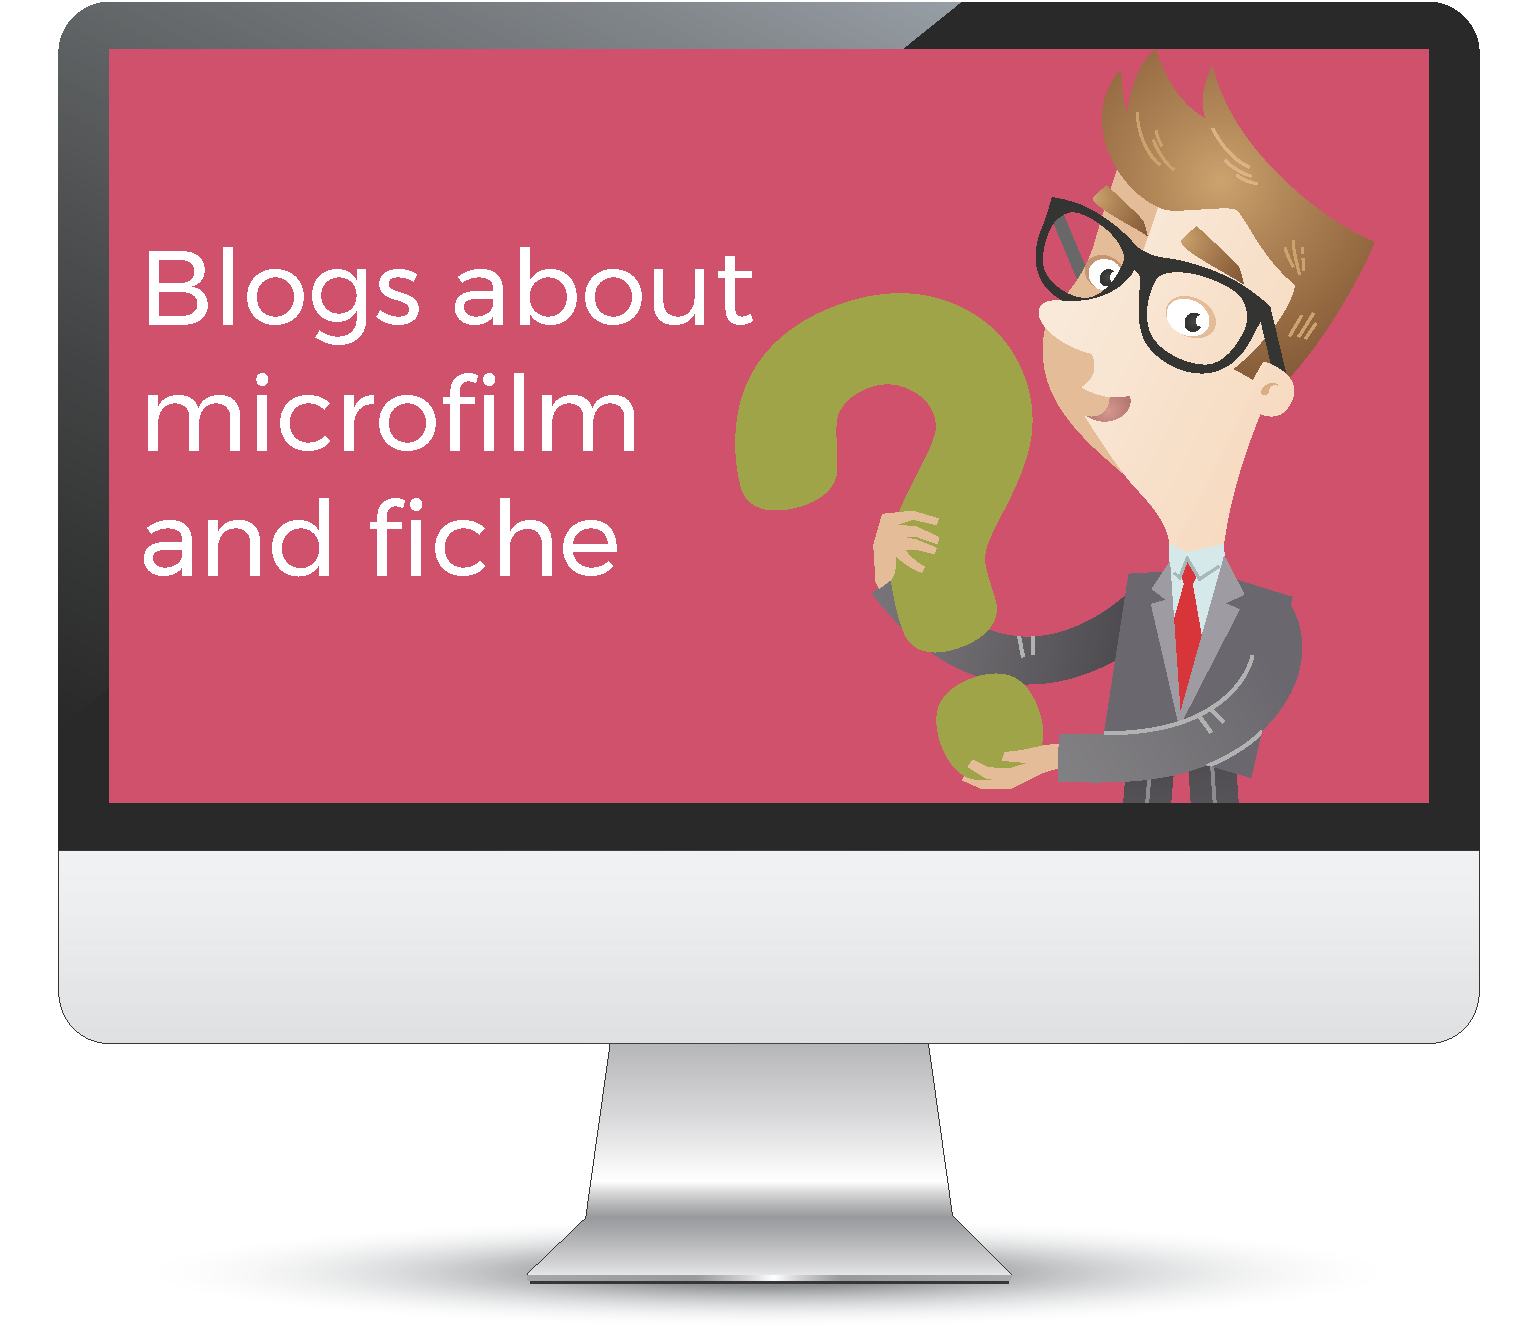 Blogs about microfilm